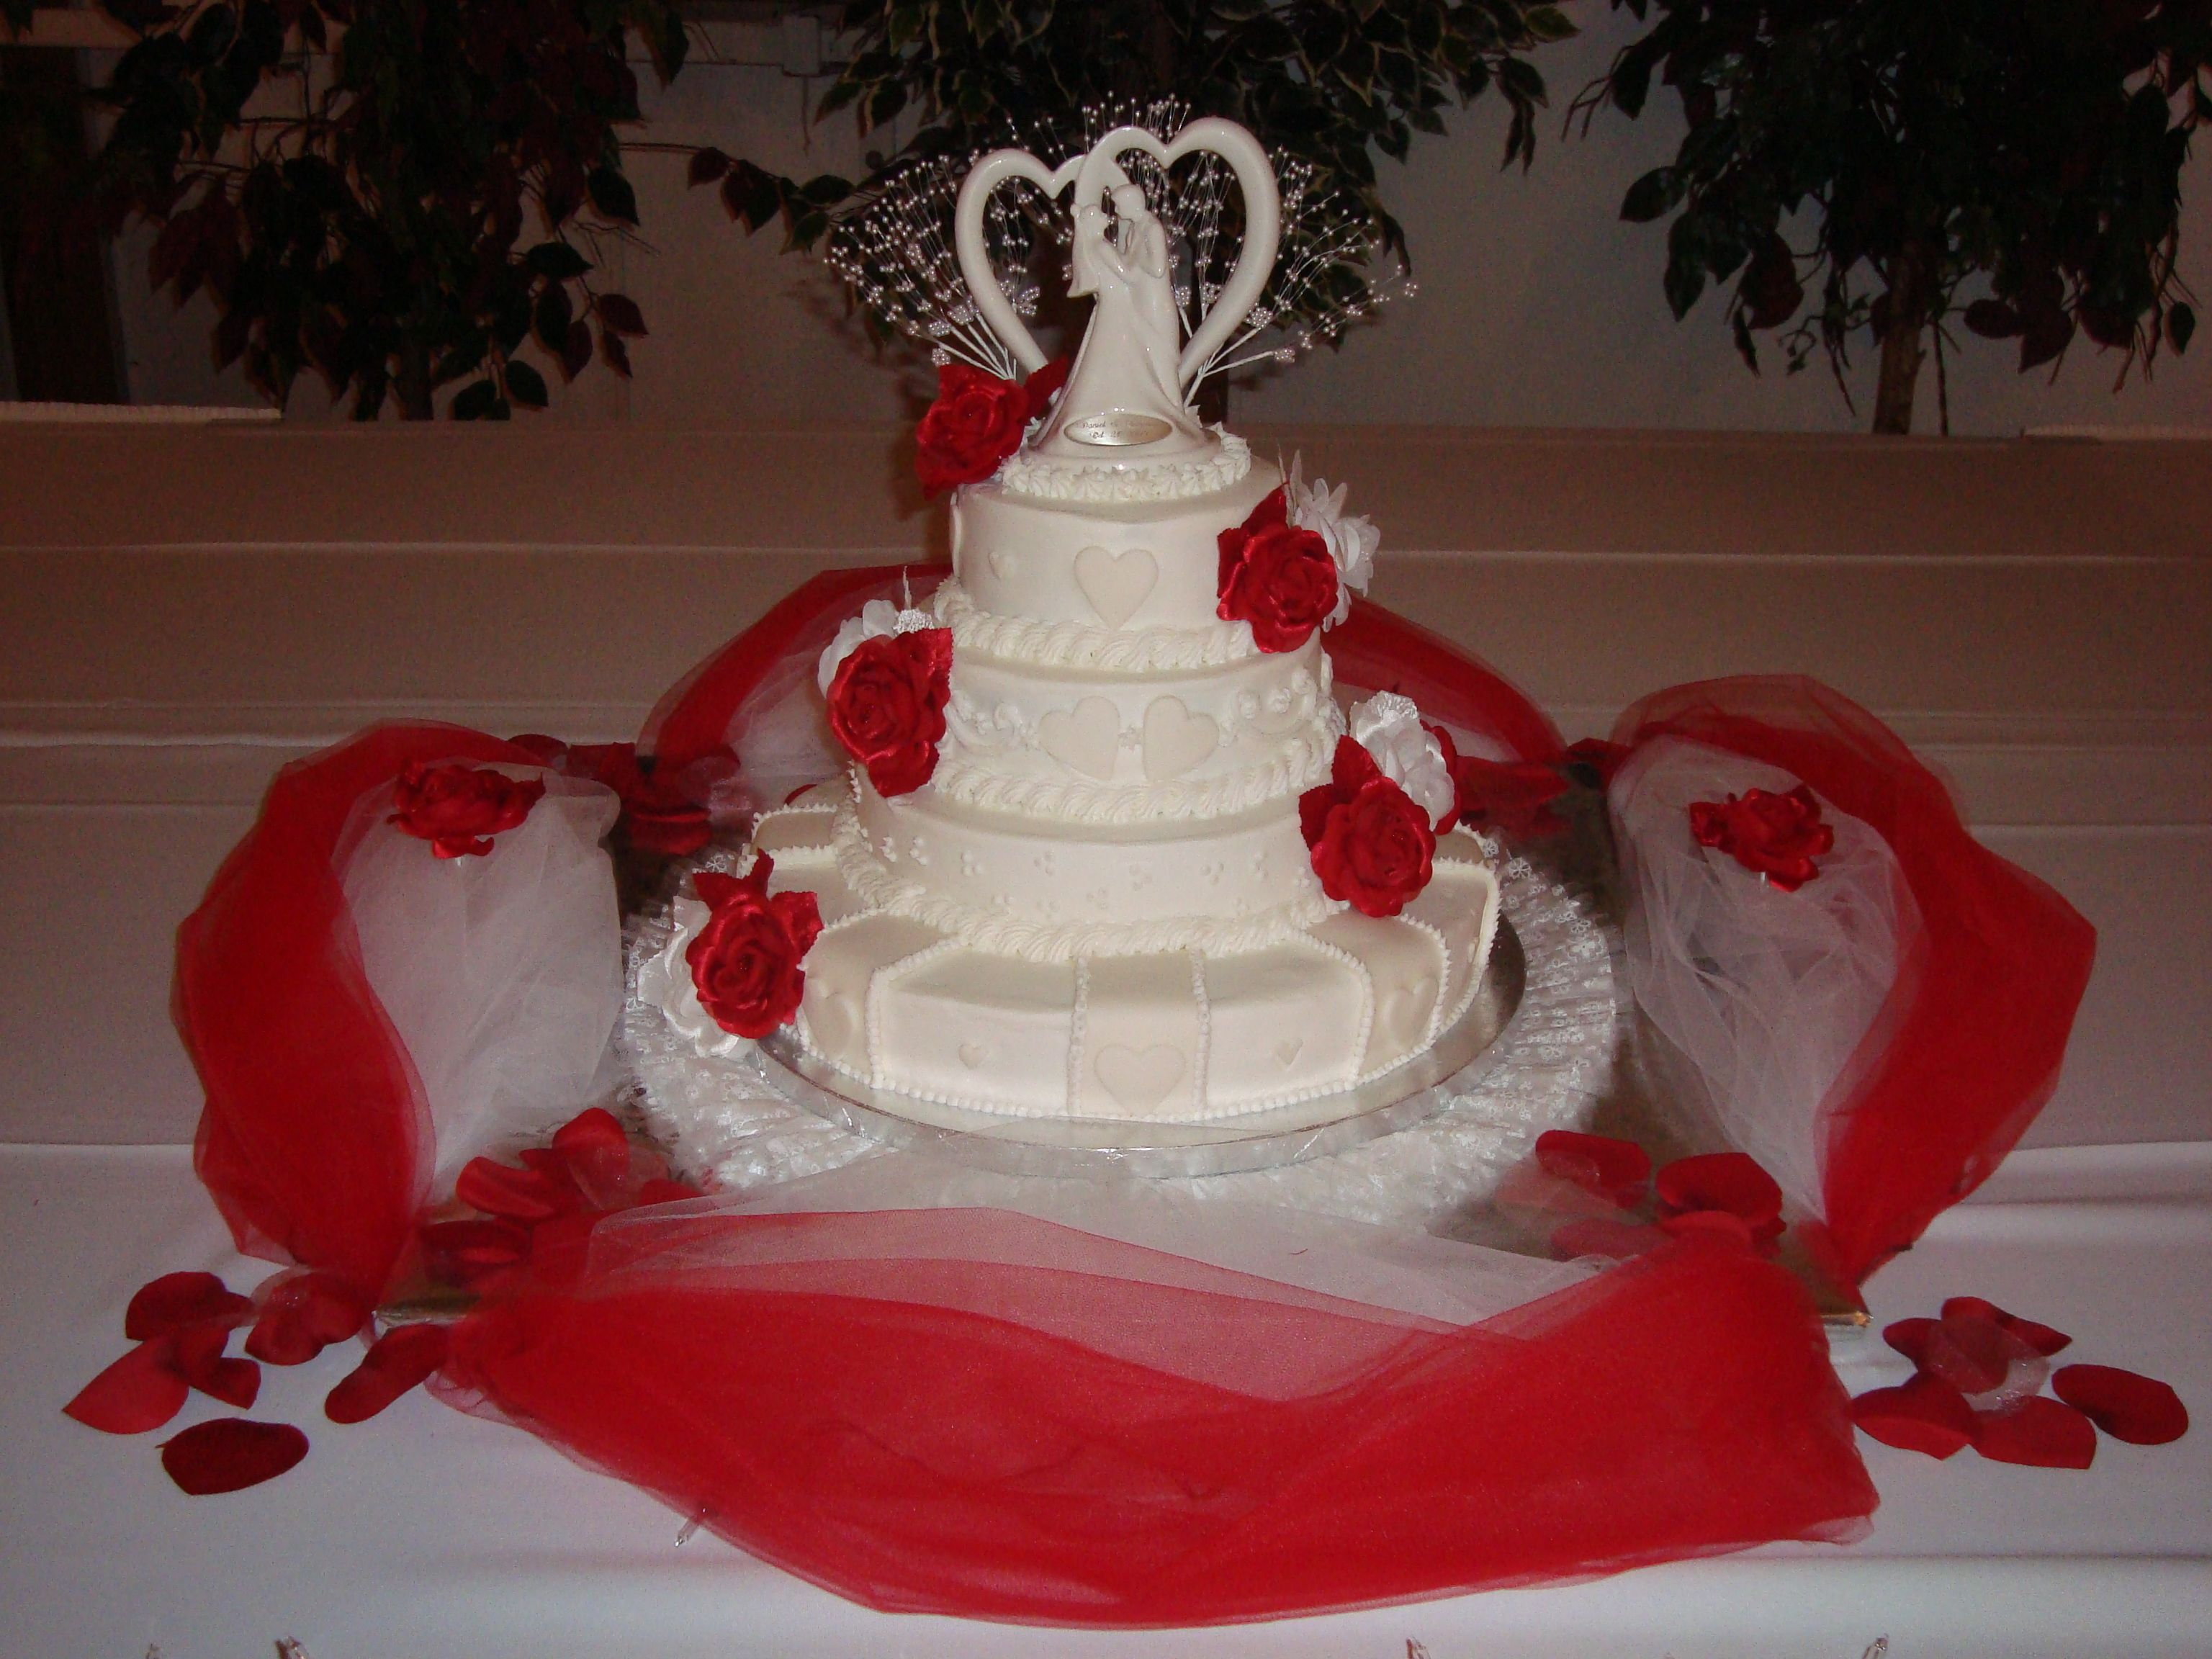 ... by Lisa {Lick It Or Not} on Diva Design Custom Cakes (Cakes) | Pi